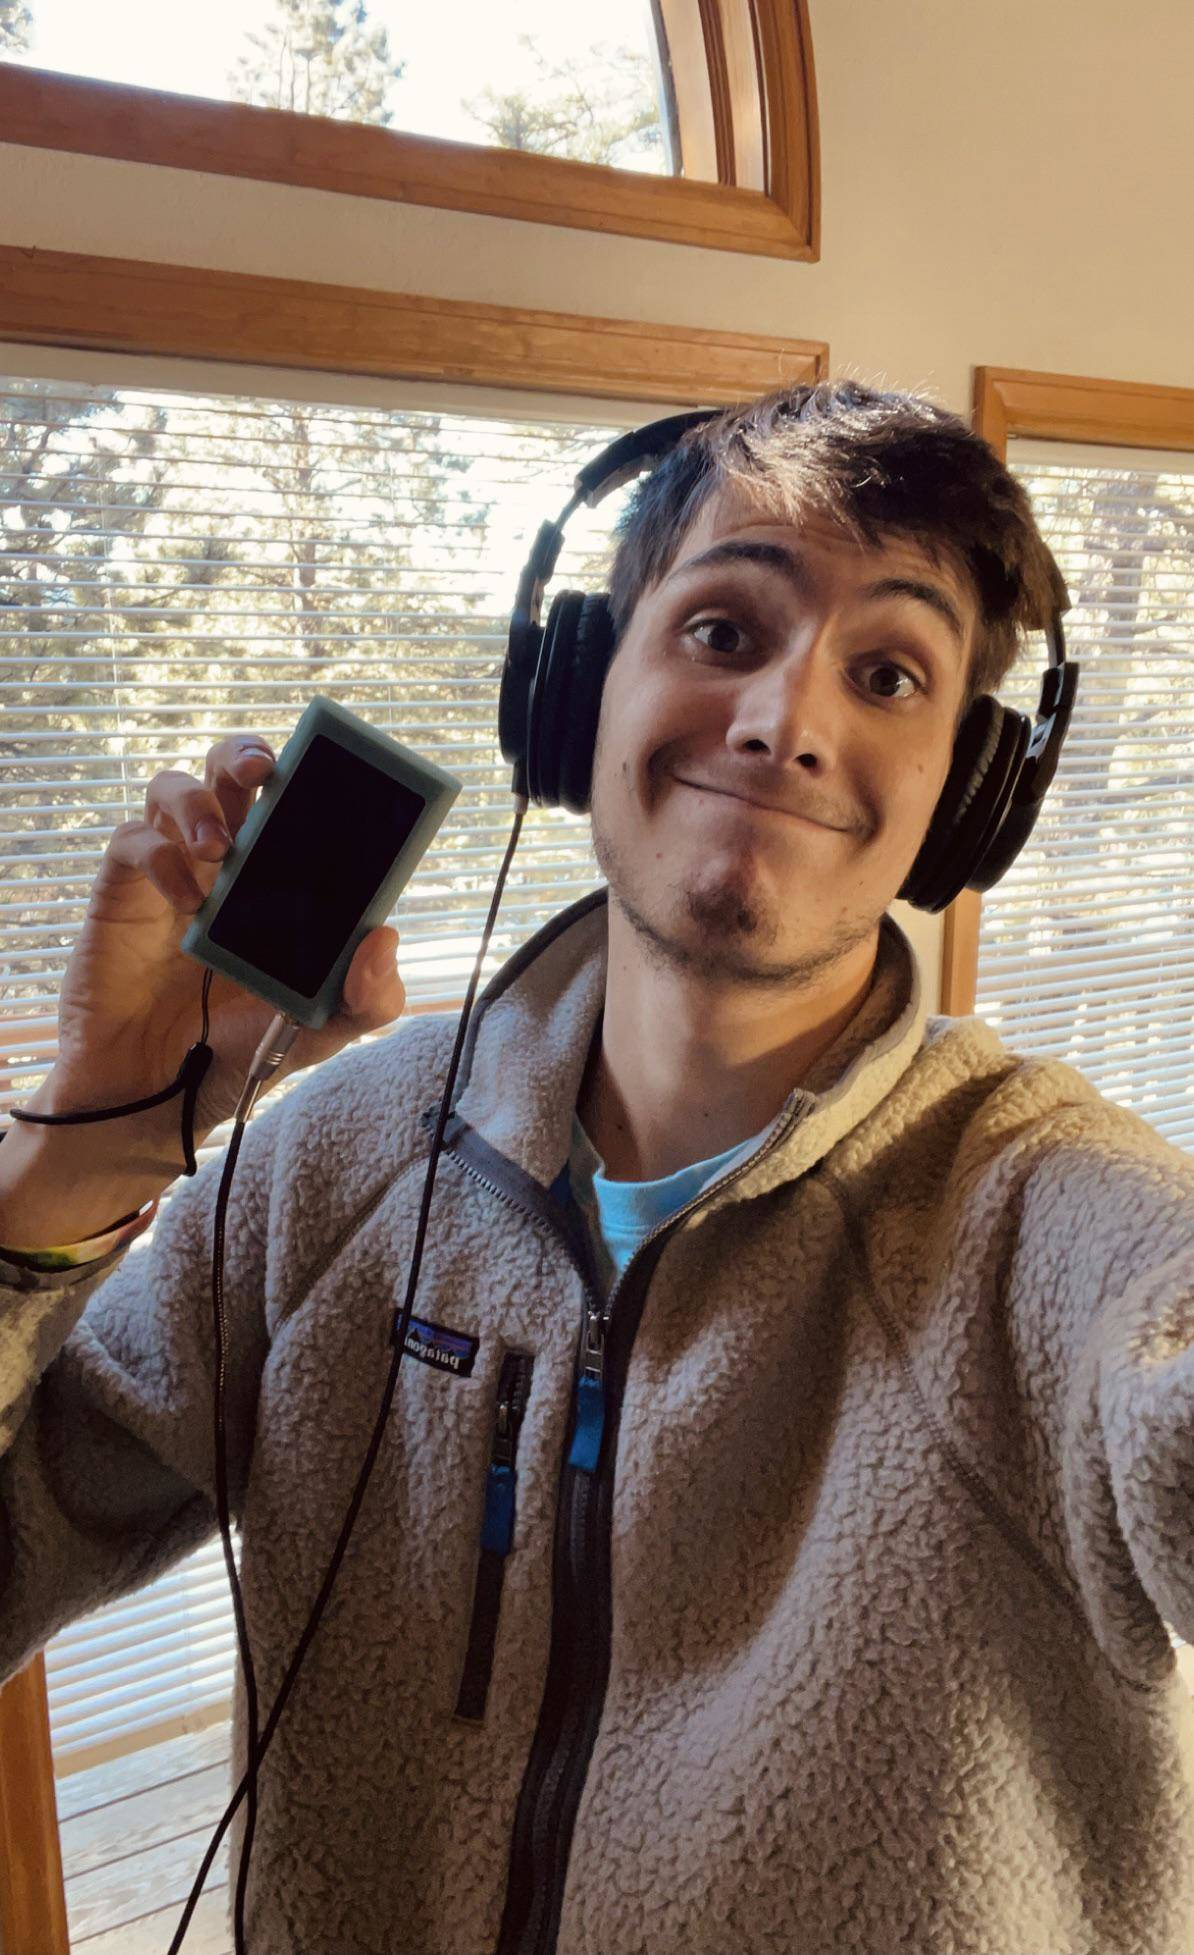 Man wearing headphones and holding an mp3 player